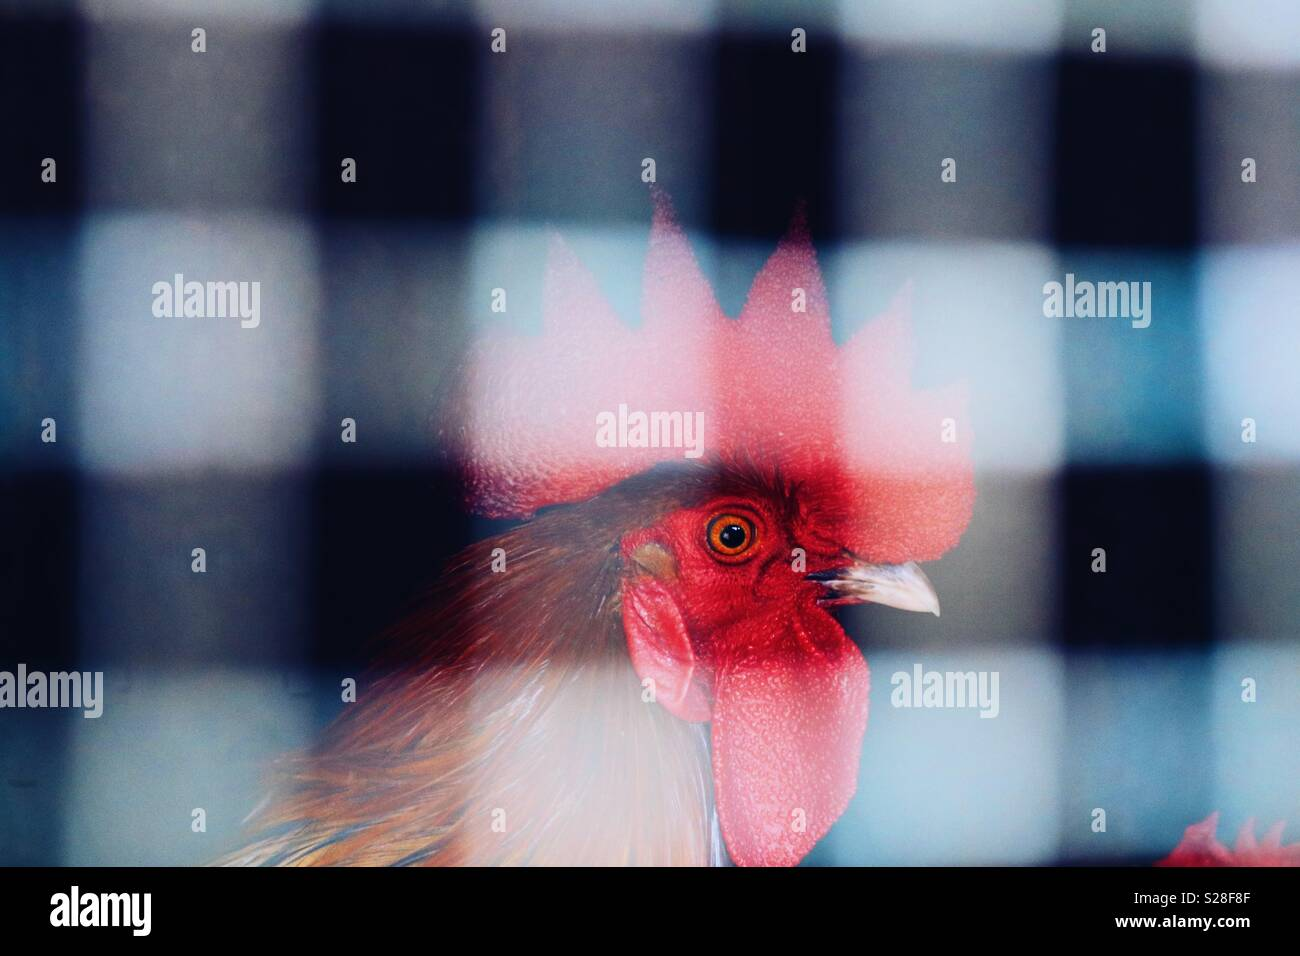 Chicken in the cage - Stock Image